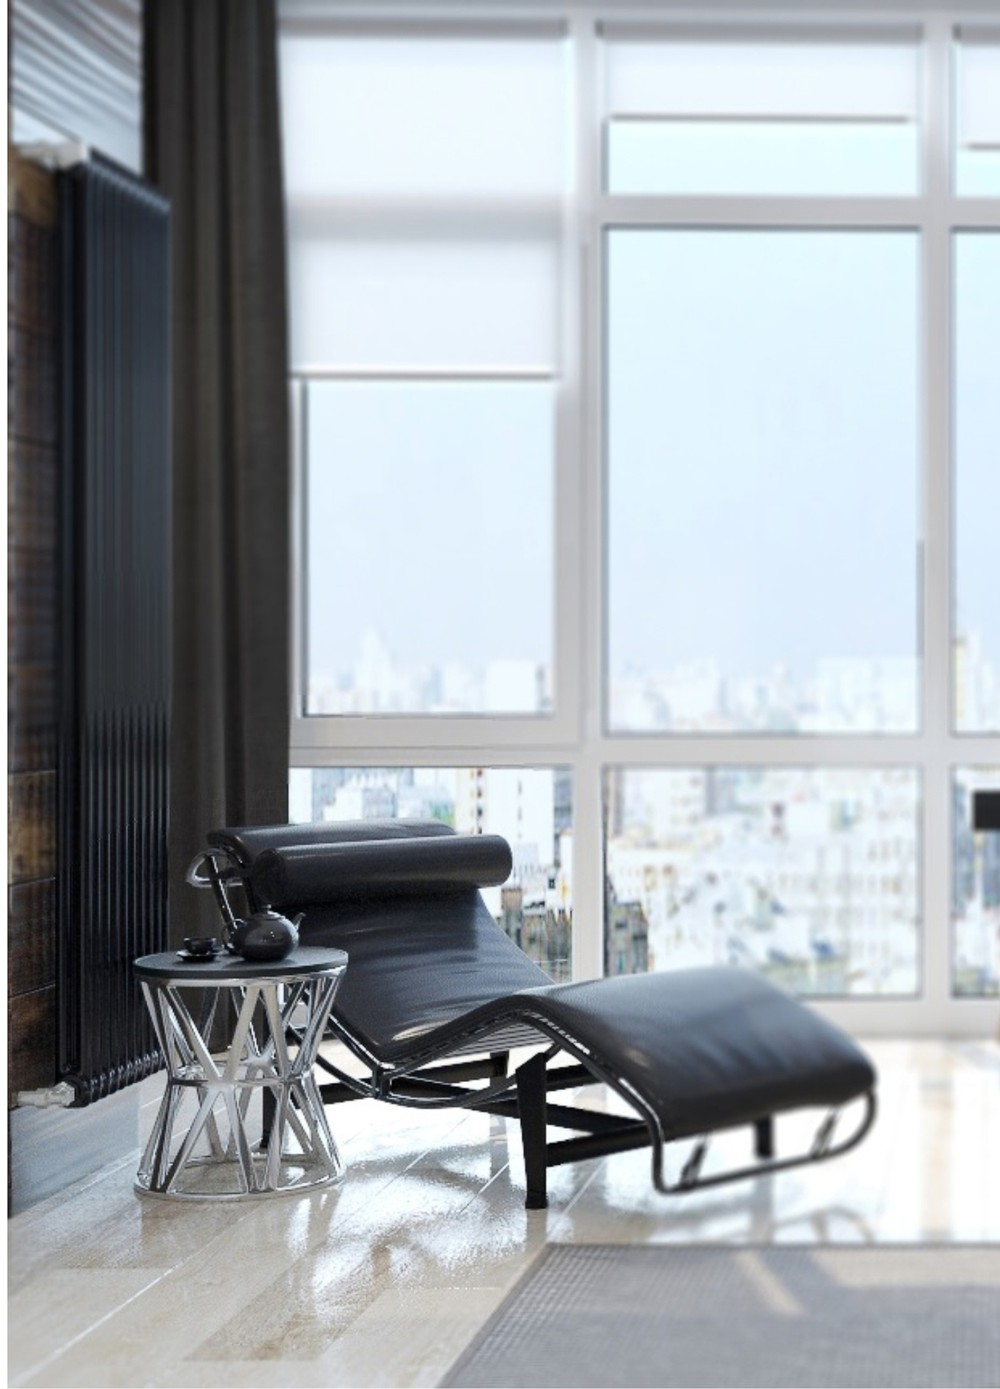 Black Chaise - Two sleek apartments with interior glass walls